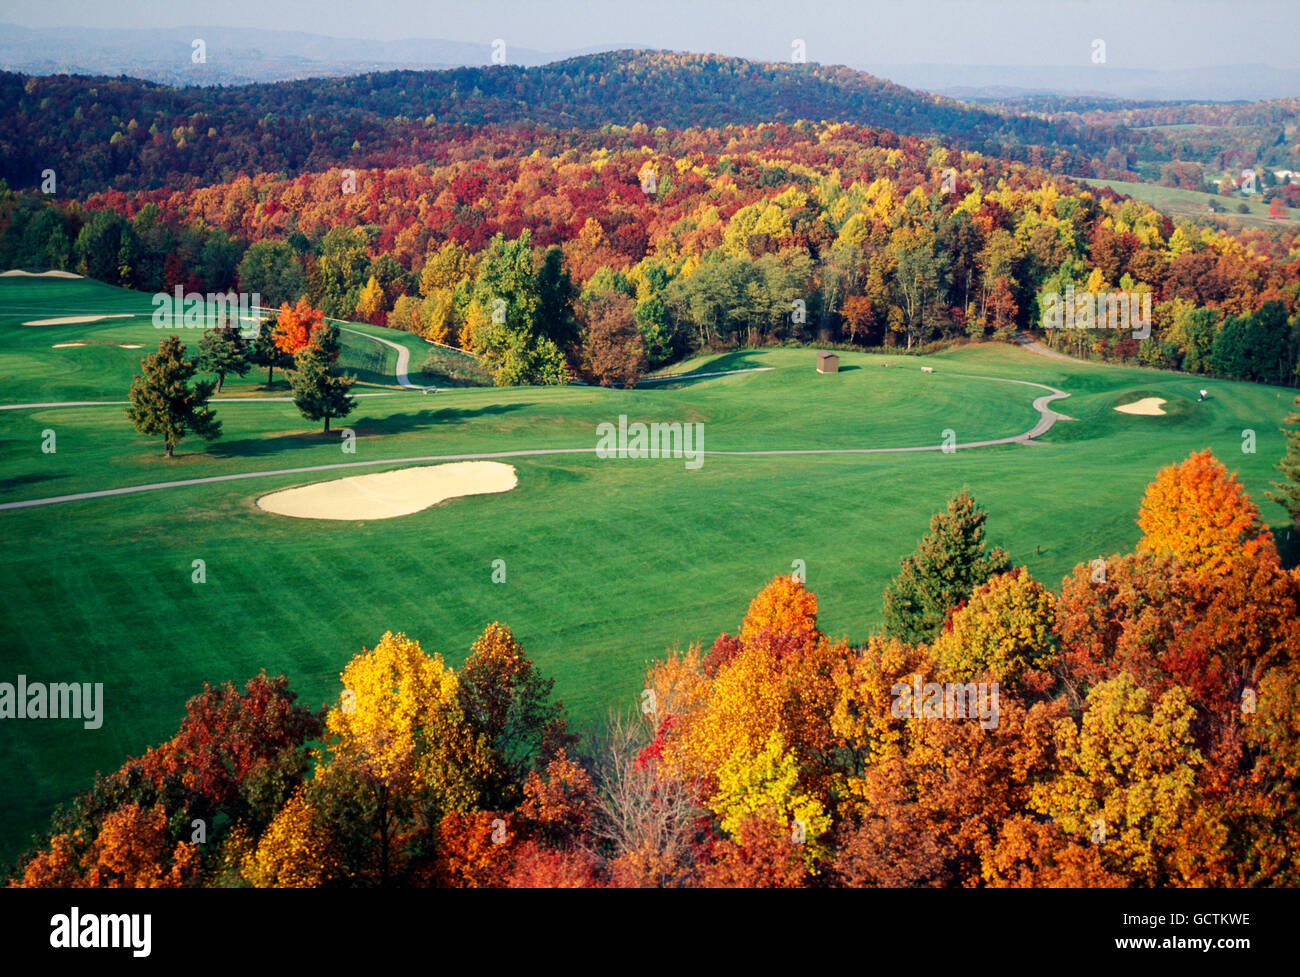 Aerial view of golf course & fall foliage; Pipestem Resort State Park; West Virginia; USA - Stock Image